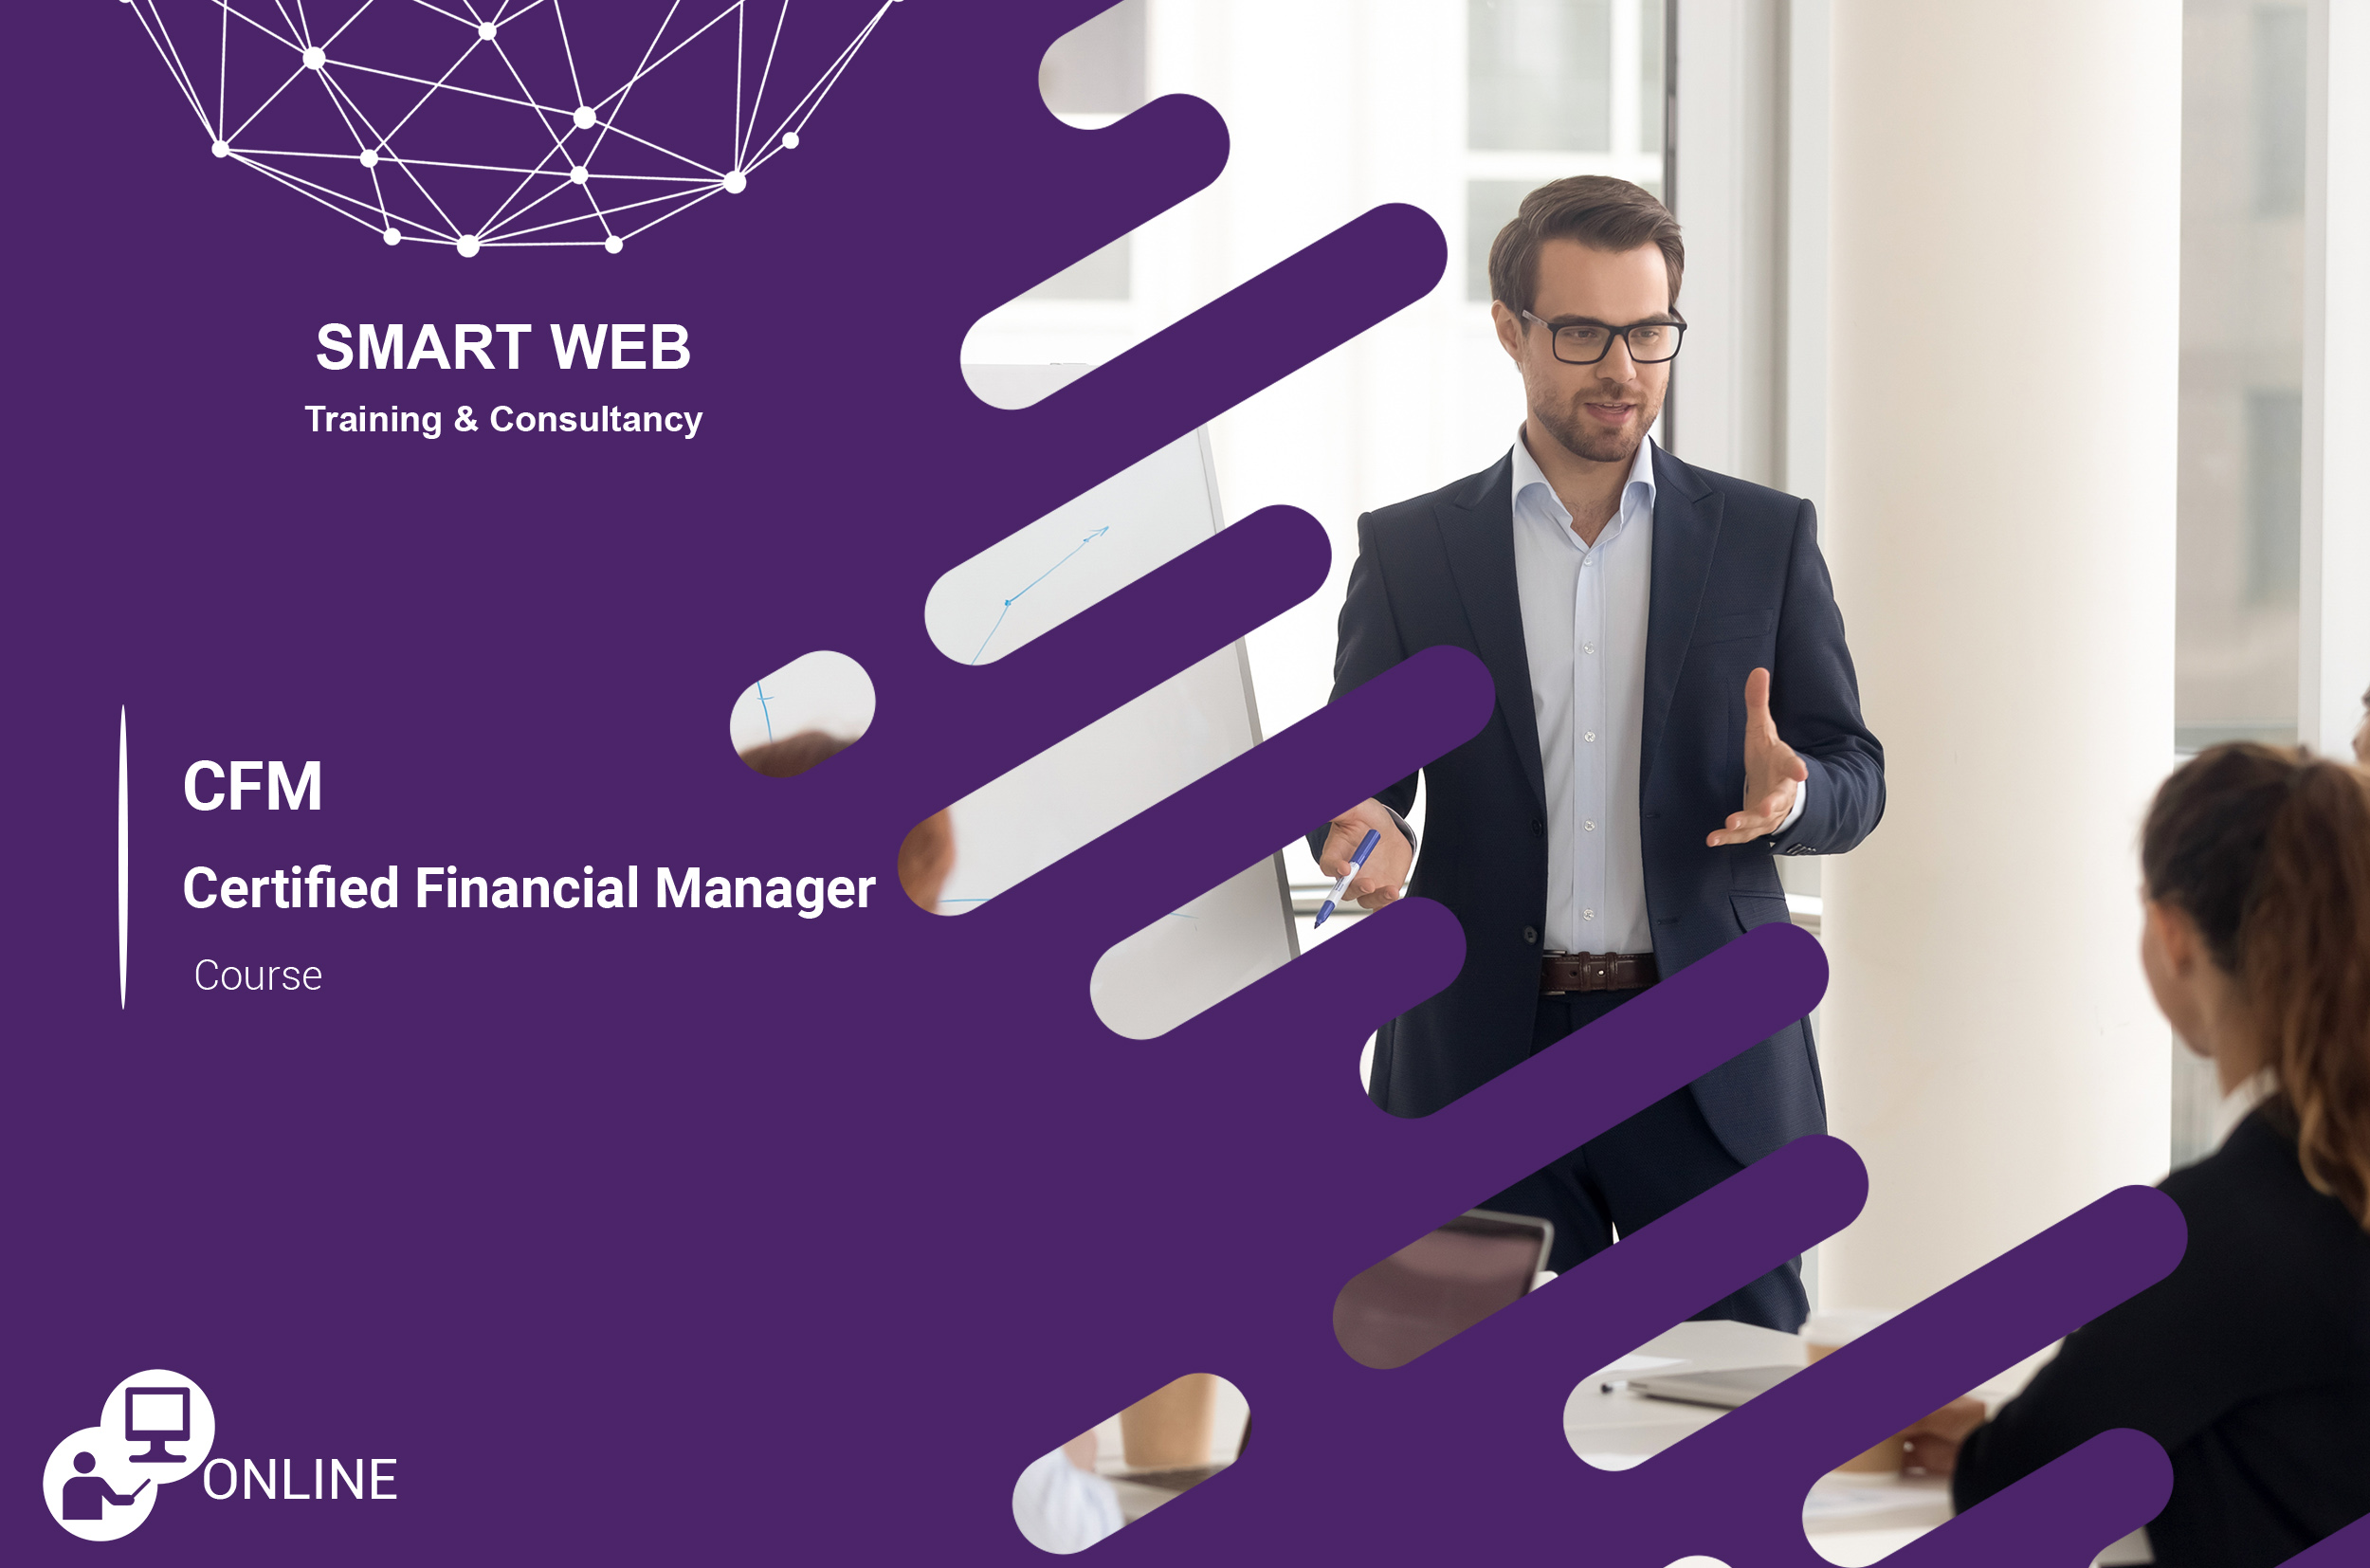 CFM - Certified Financial Manager